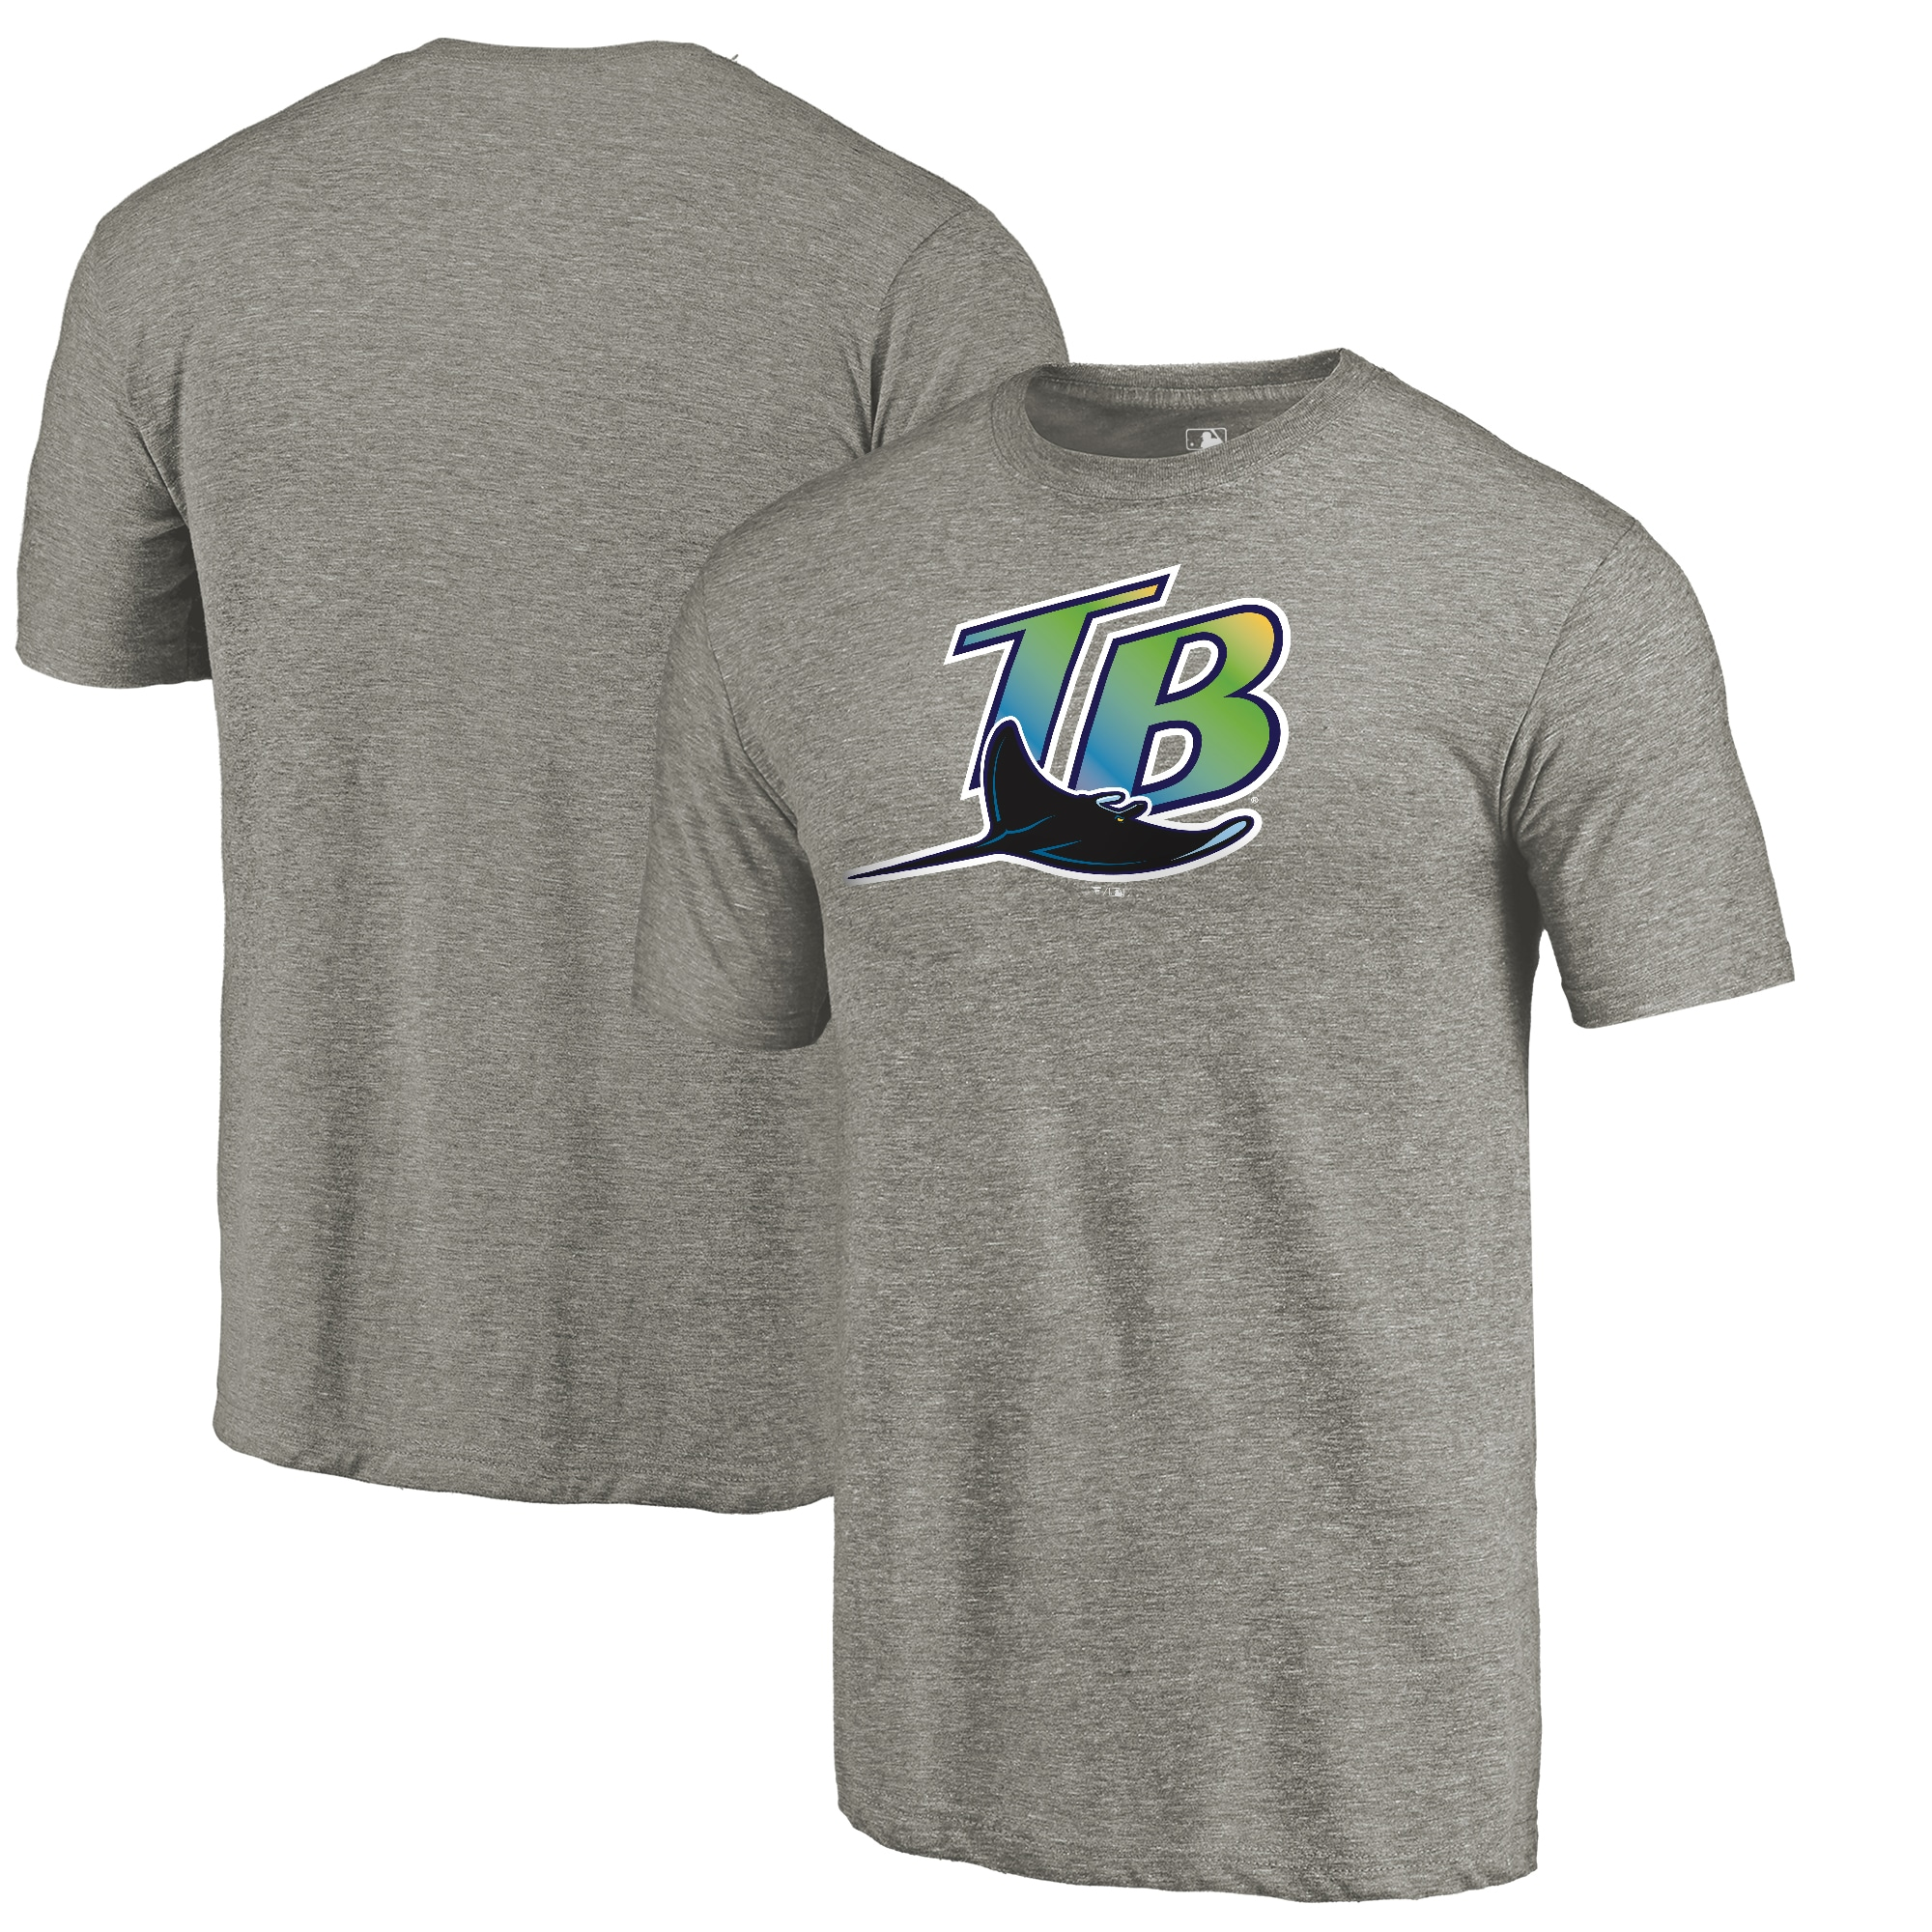 Tampa Bay Rays Fanatics Branded Cooperstown Collection Forbes Tri-Blend T-Shirt - Ash